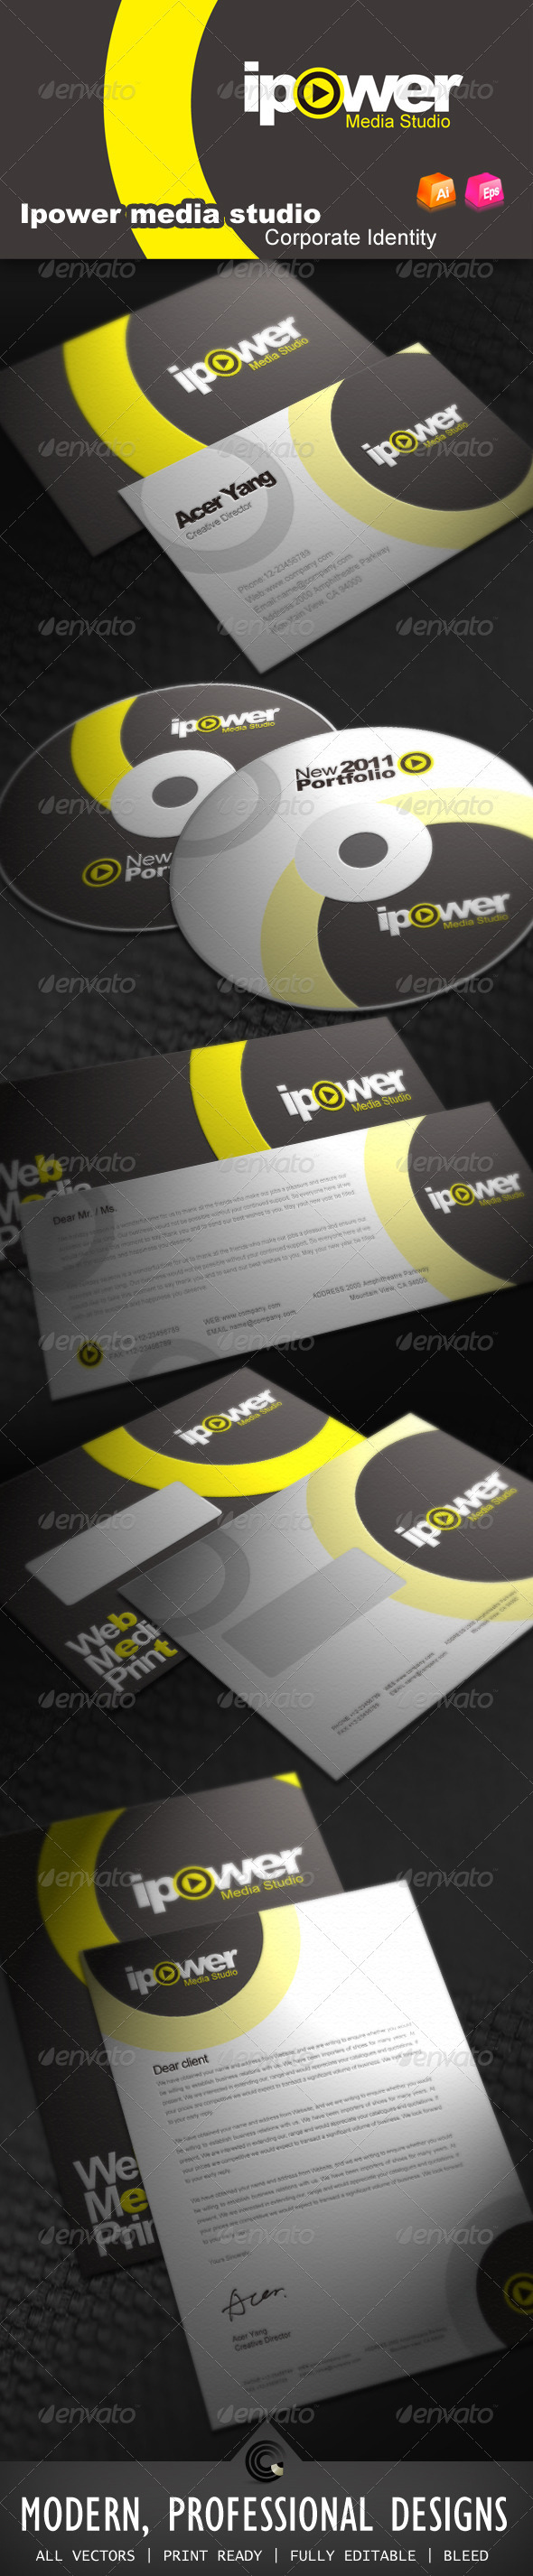 Ipower Midea Studio Corporate Identity - Stationery Print Templates